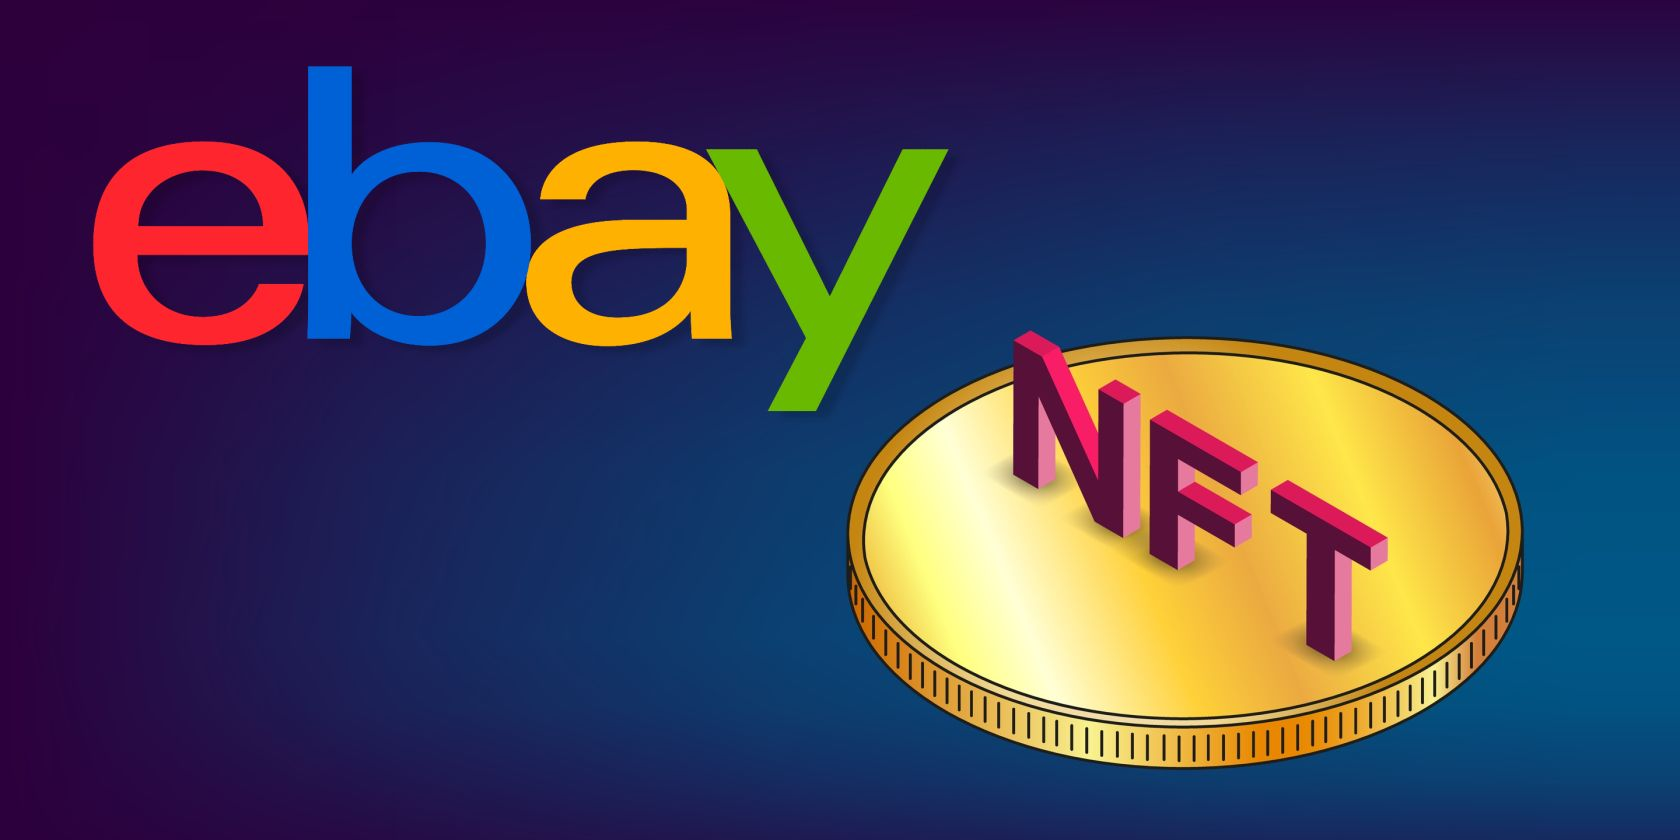 You'll Soon Be Able to Buy NFTs on eBay